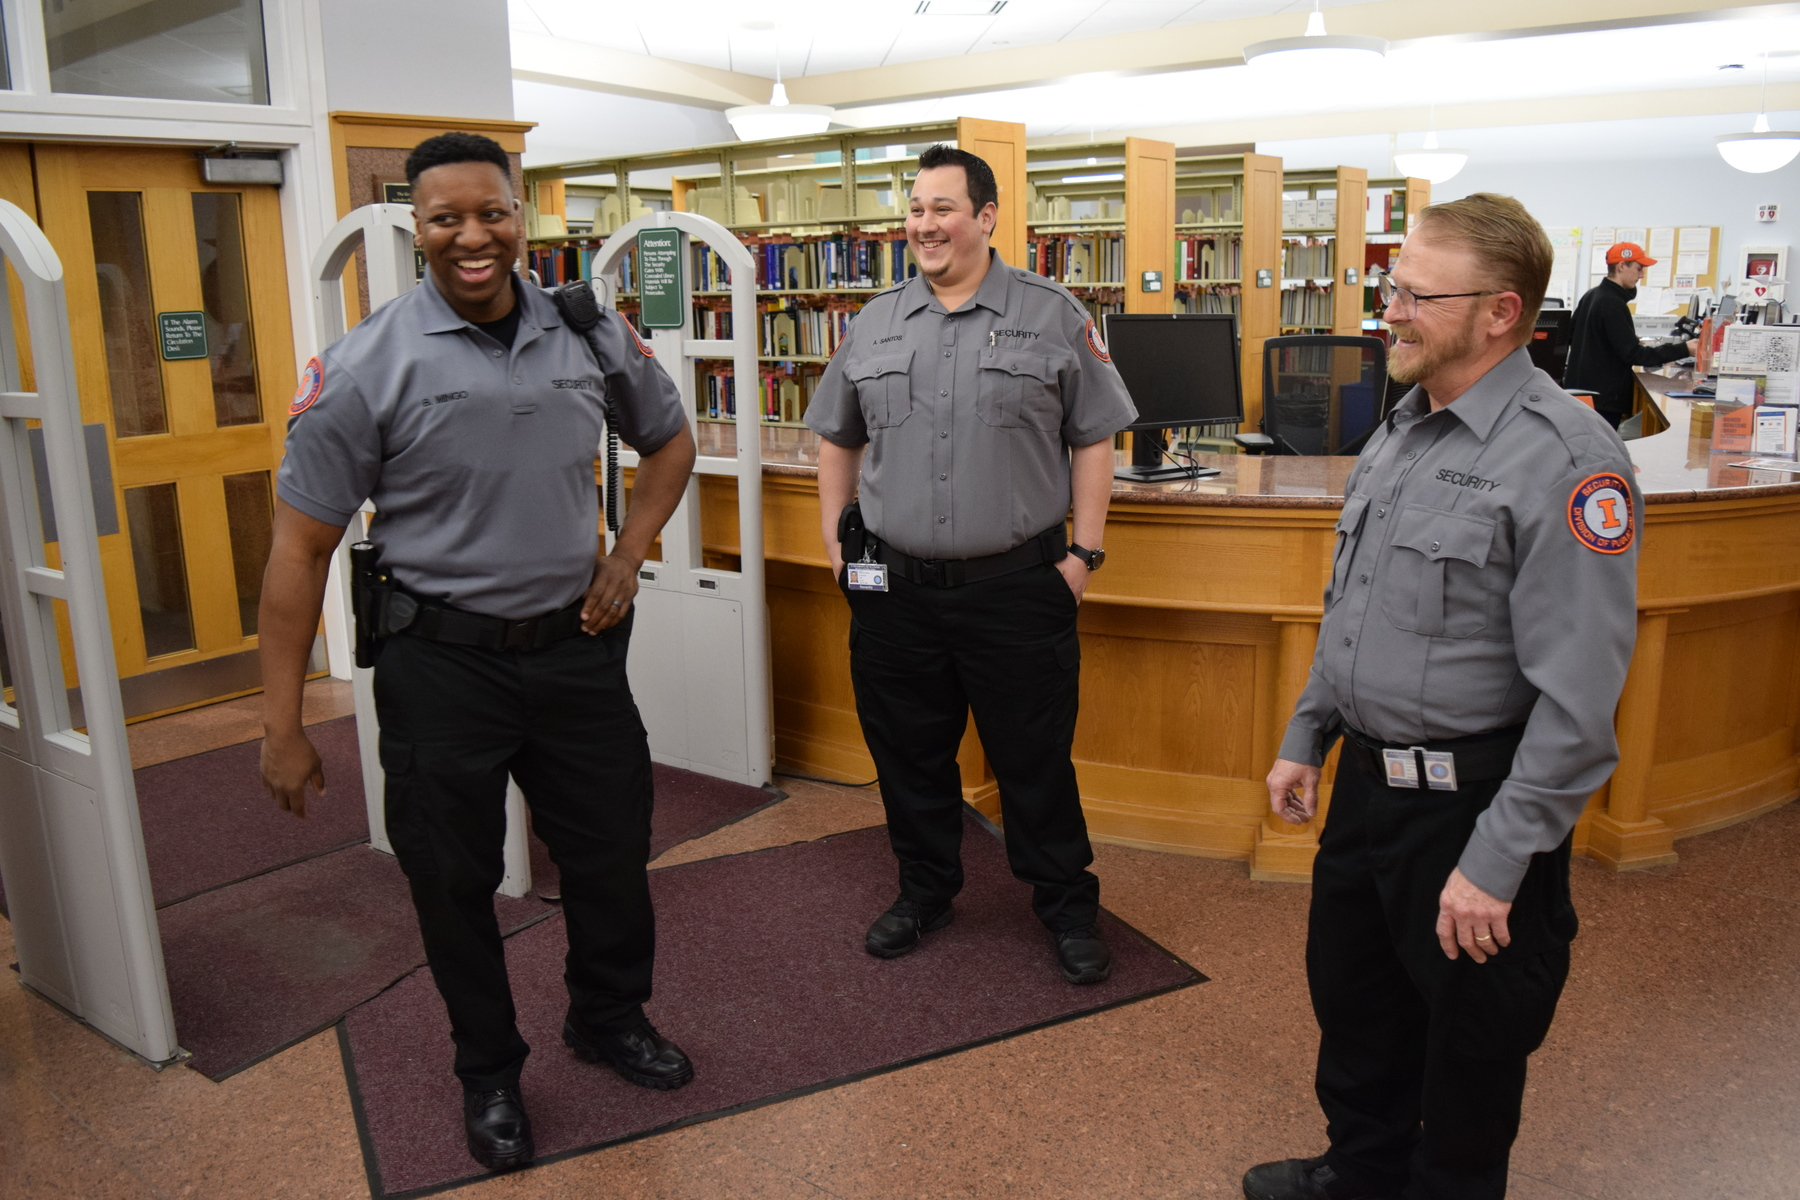 Security guards in gray provide highly-visible crime